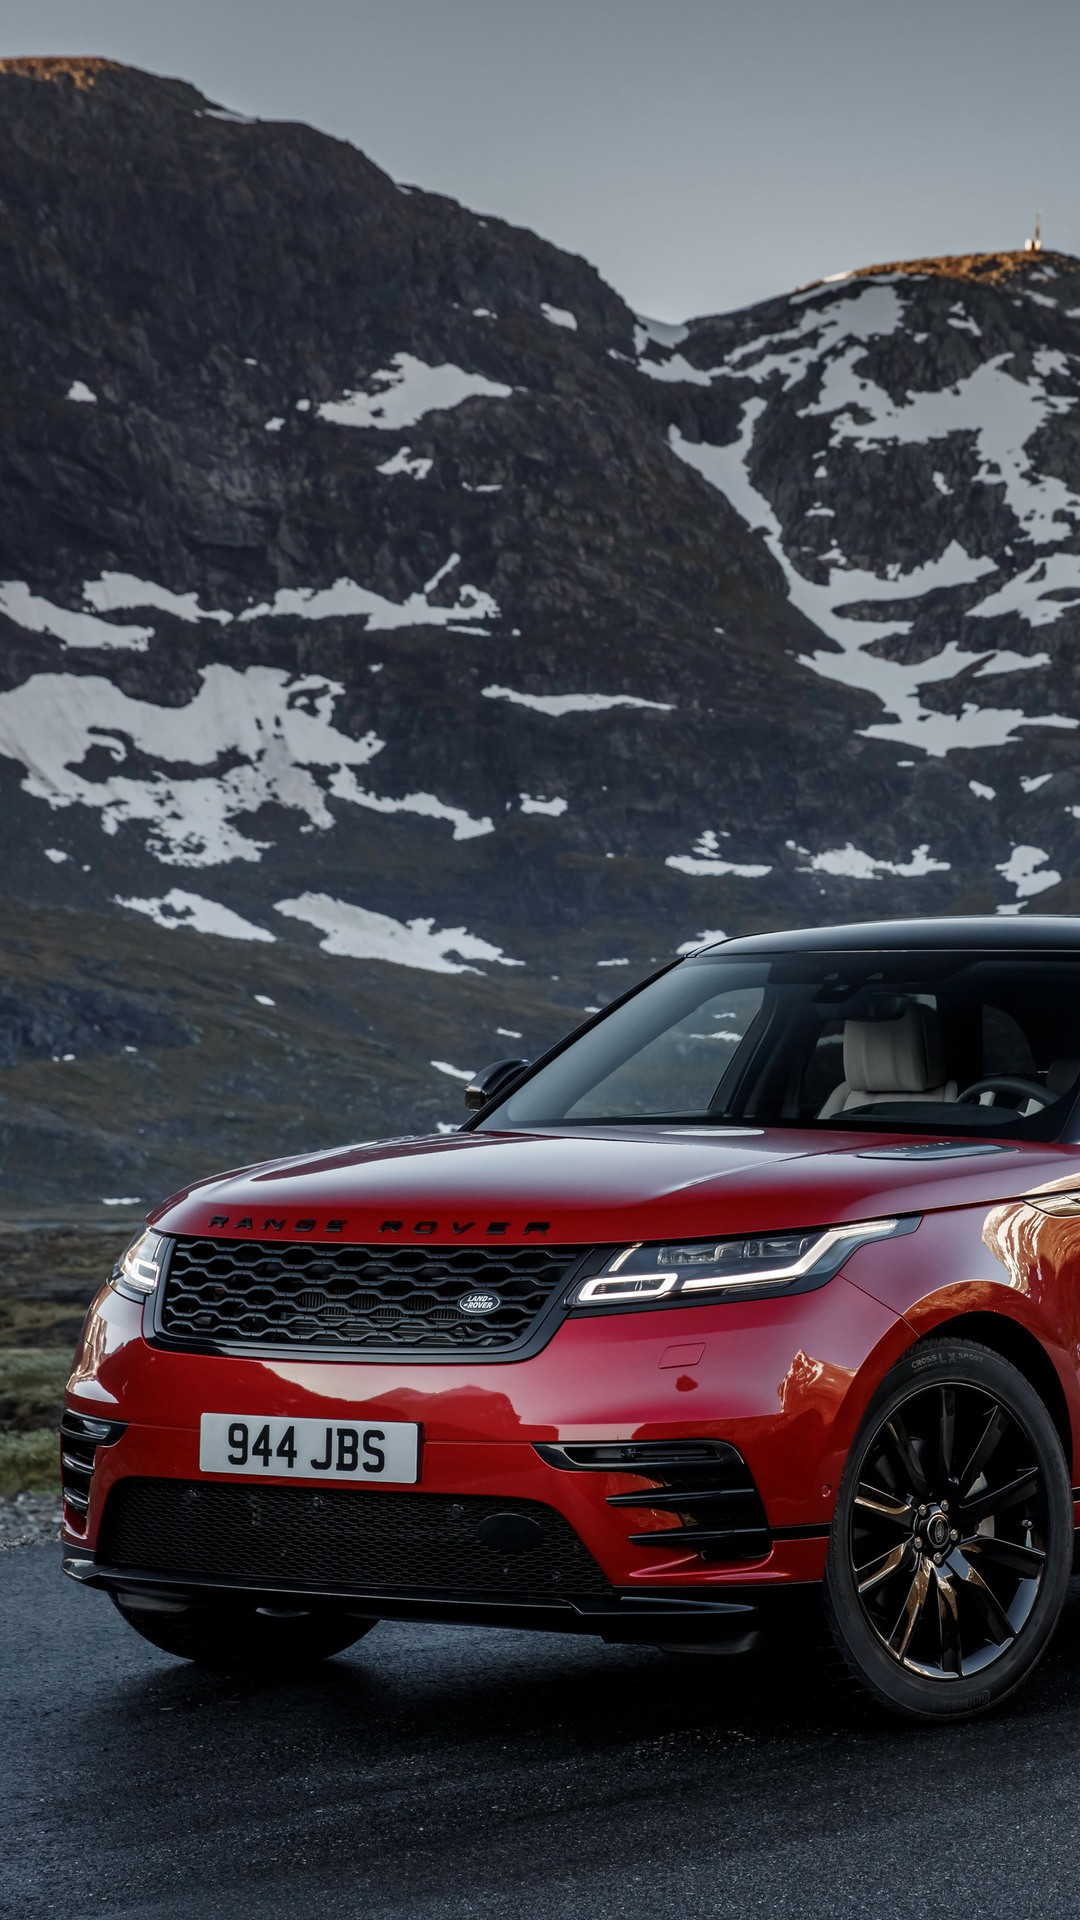 1080x1920 - Range Rover Wallpapers 31